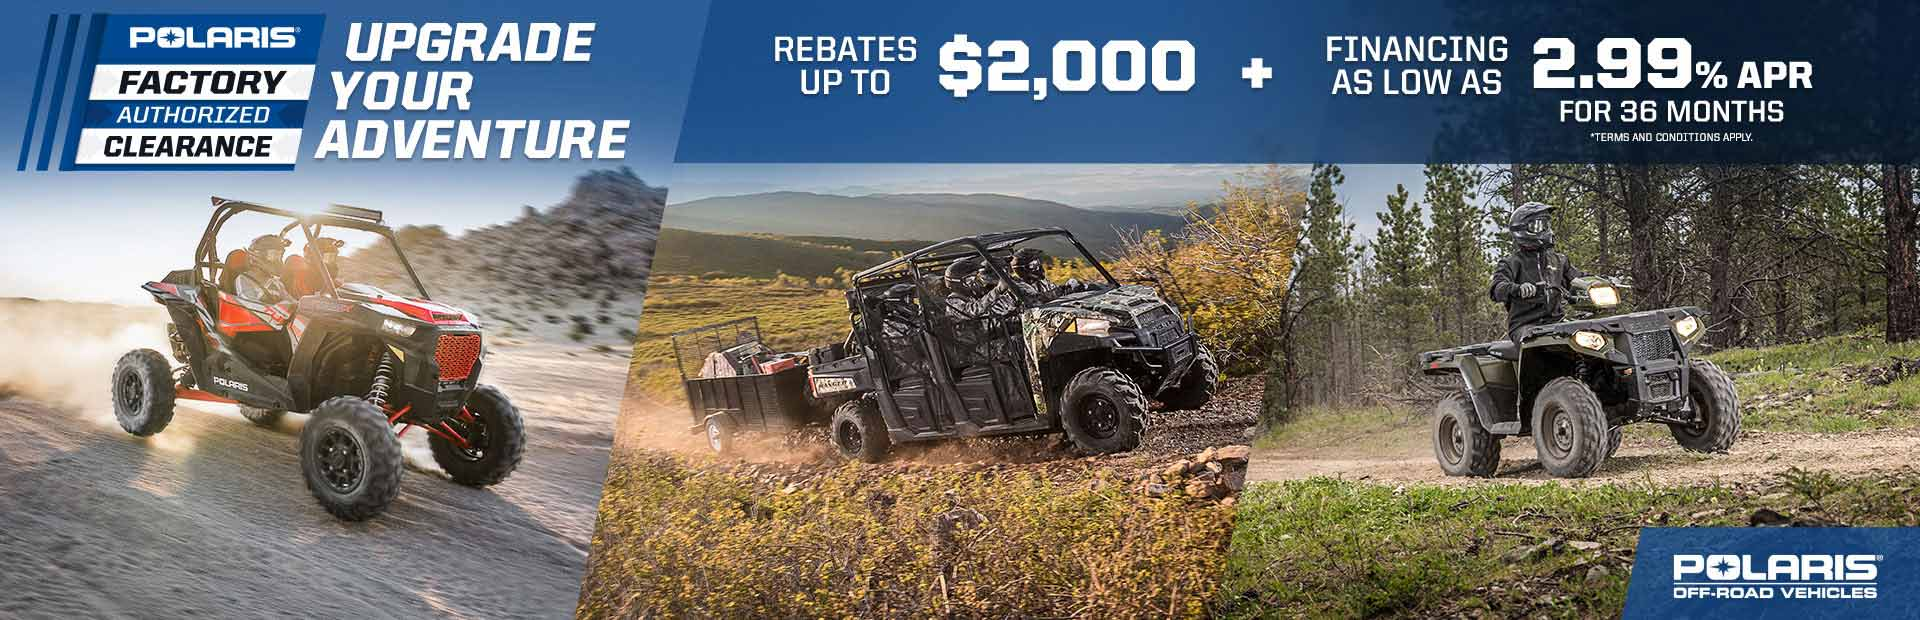 Polaris Industries: Polaris Factory Authorized Clearance Sales Event